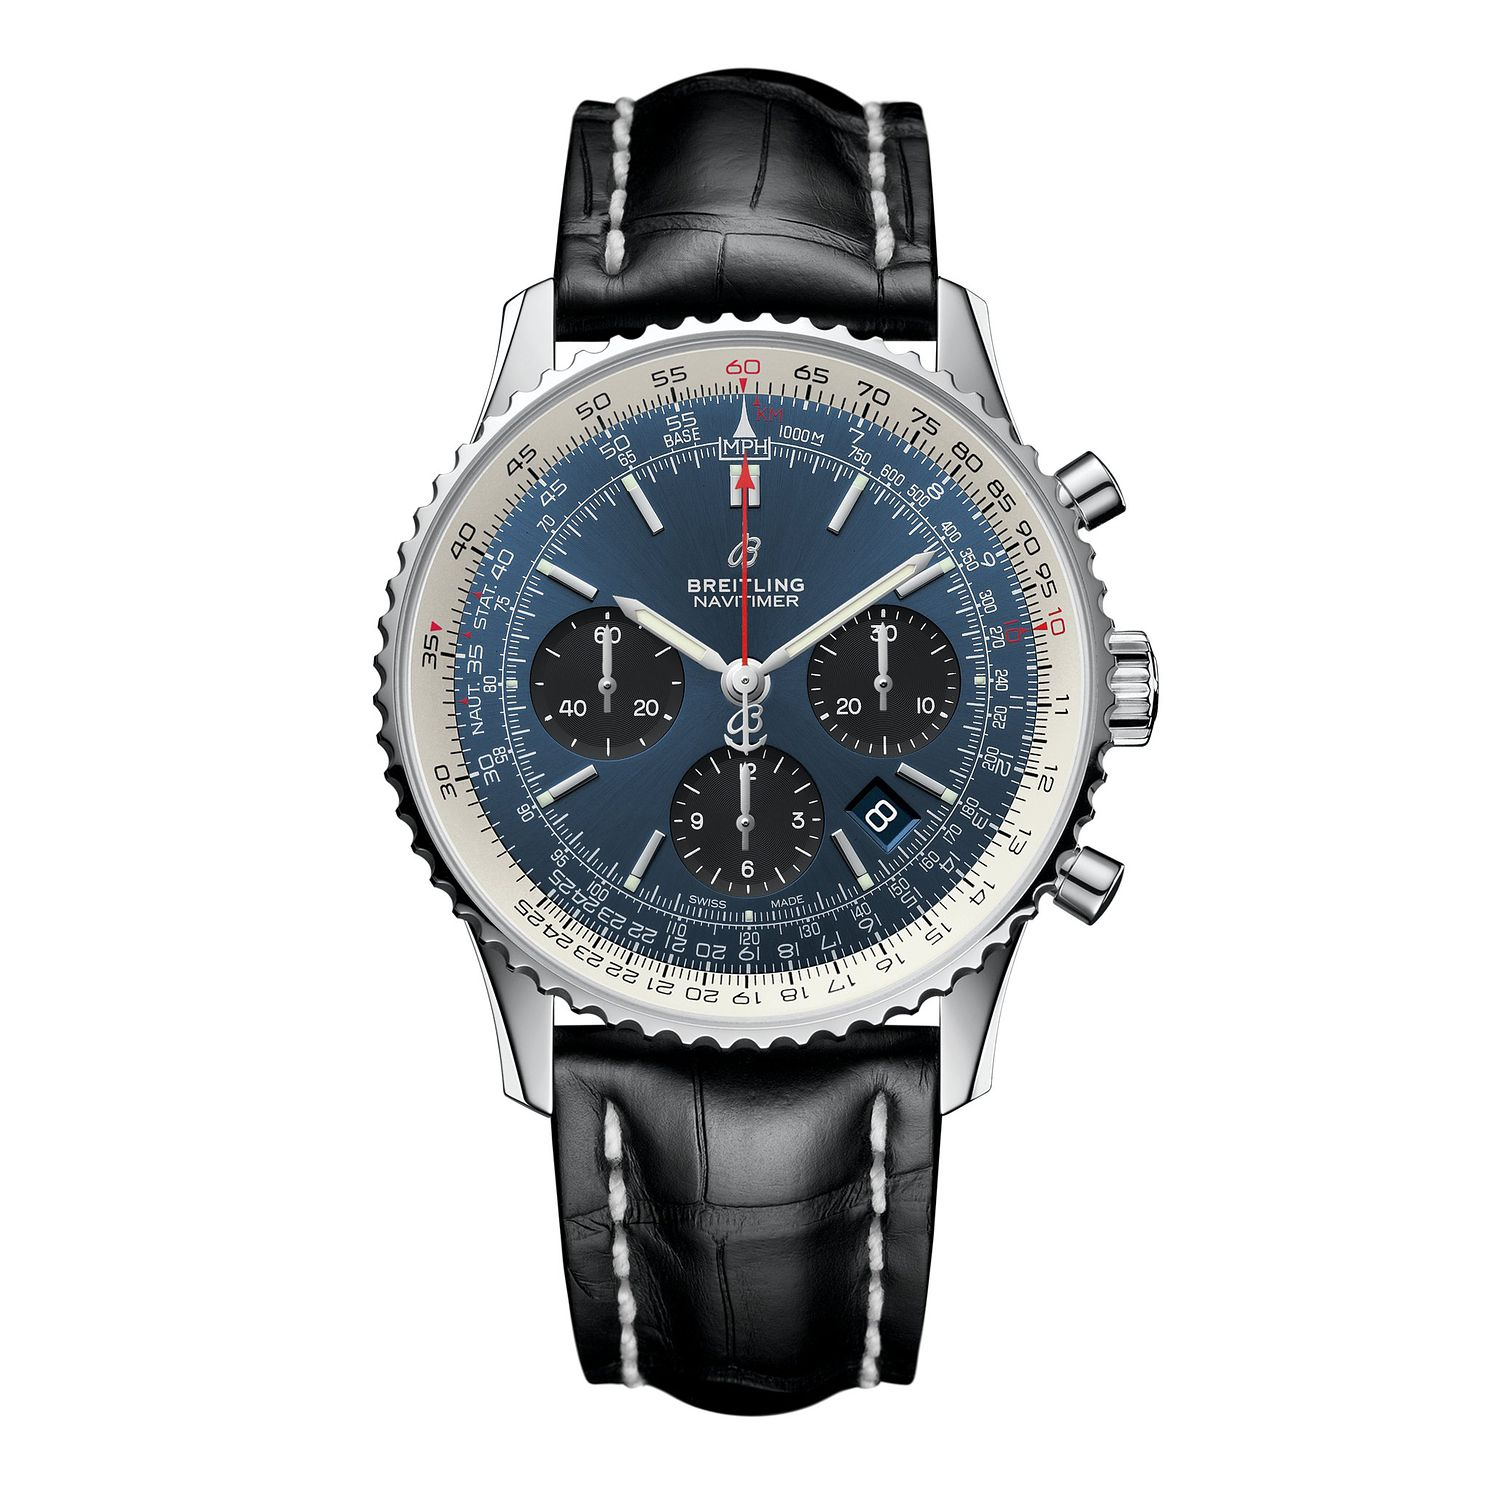 Breitling Navitimer B01 Chrono 43 Men's Leather Strap Watch - Product number 1128620